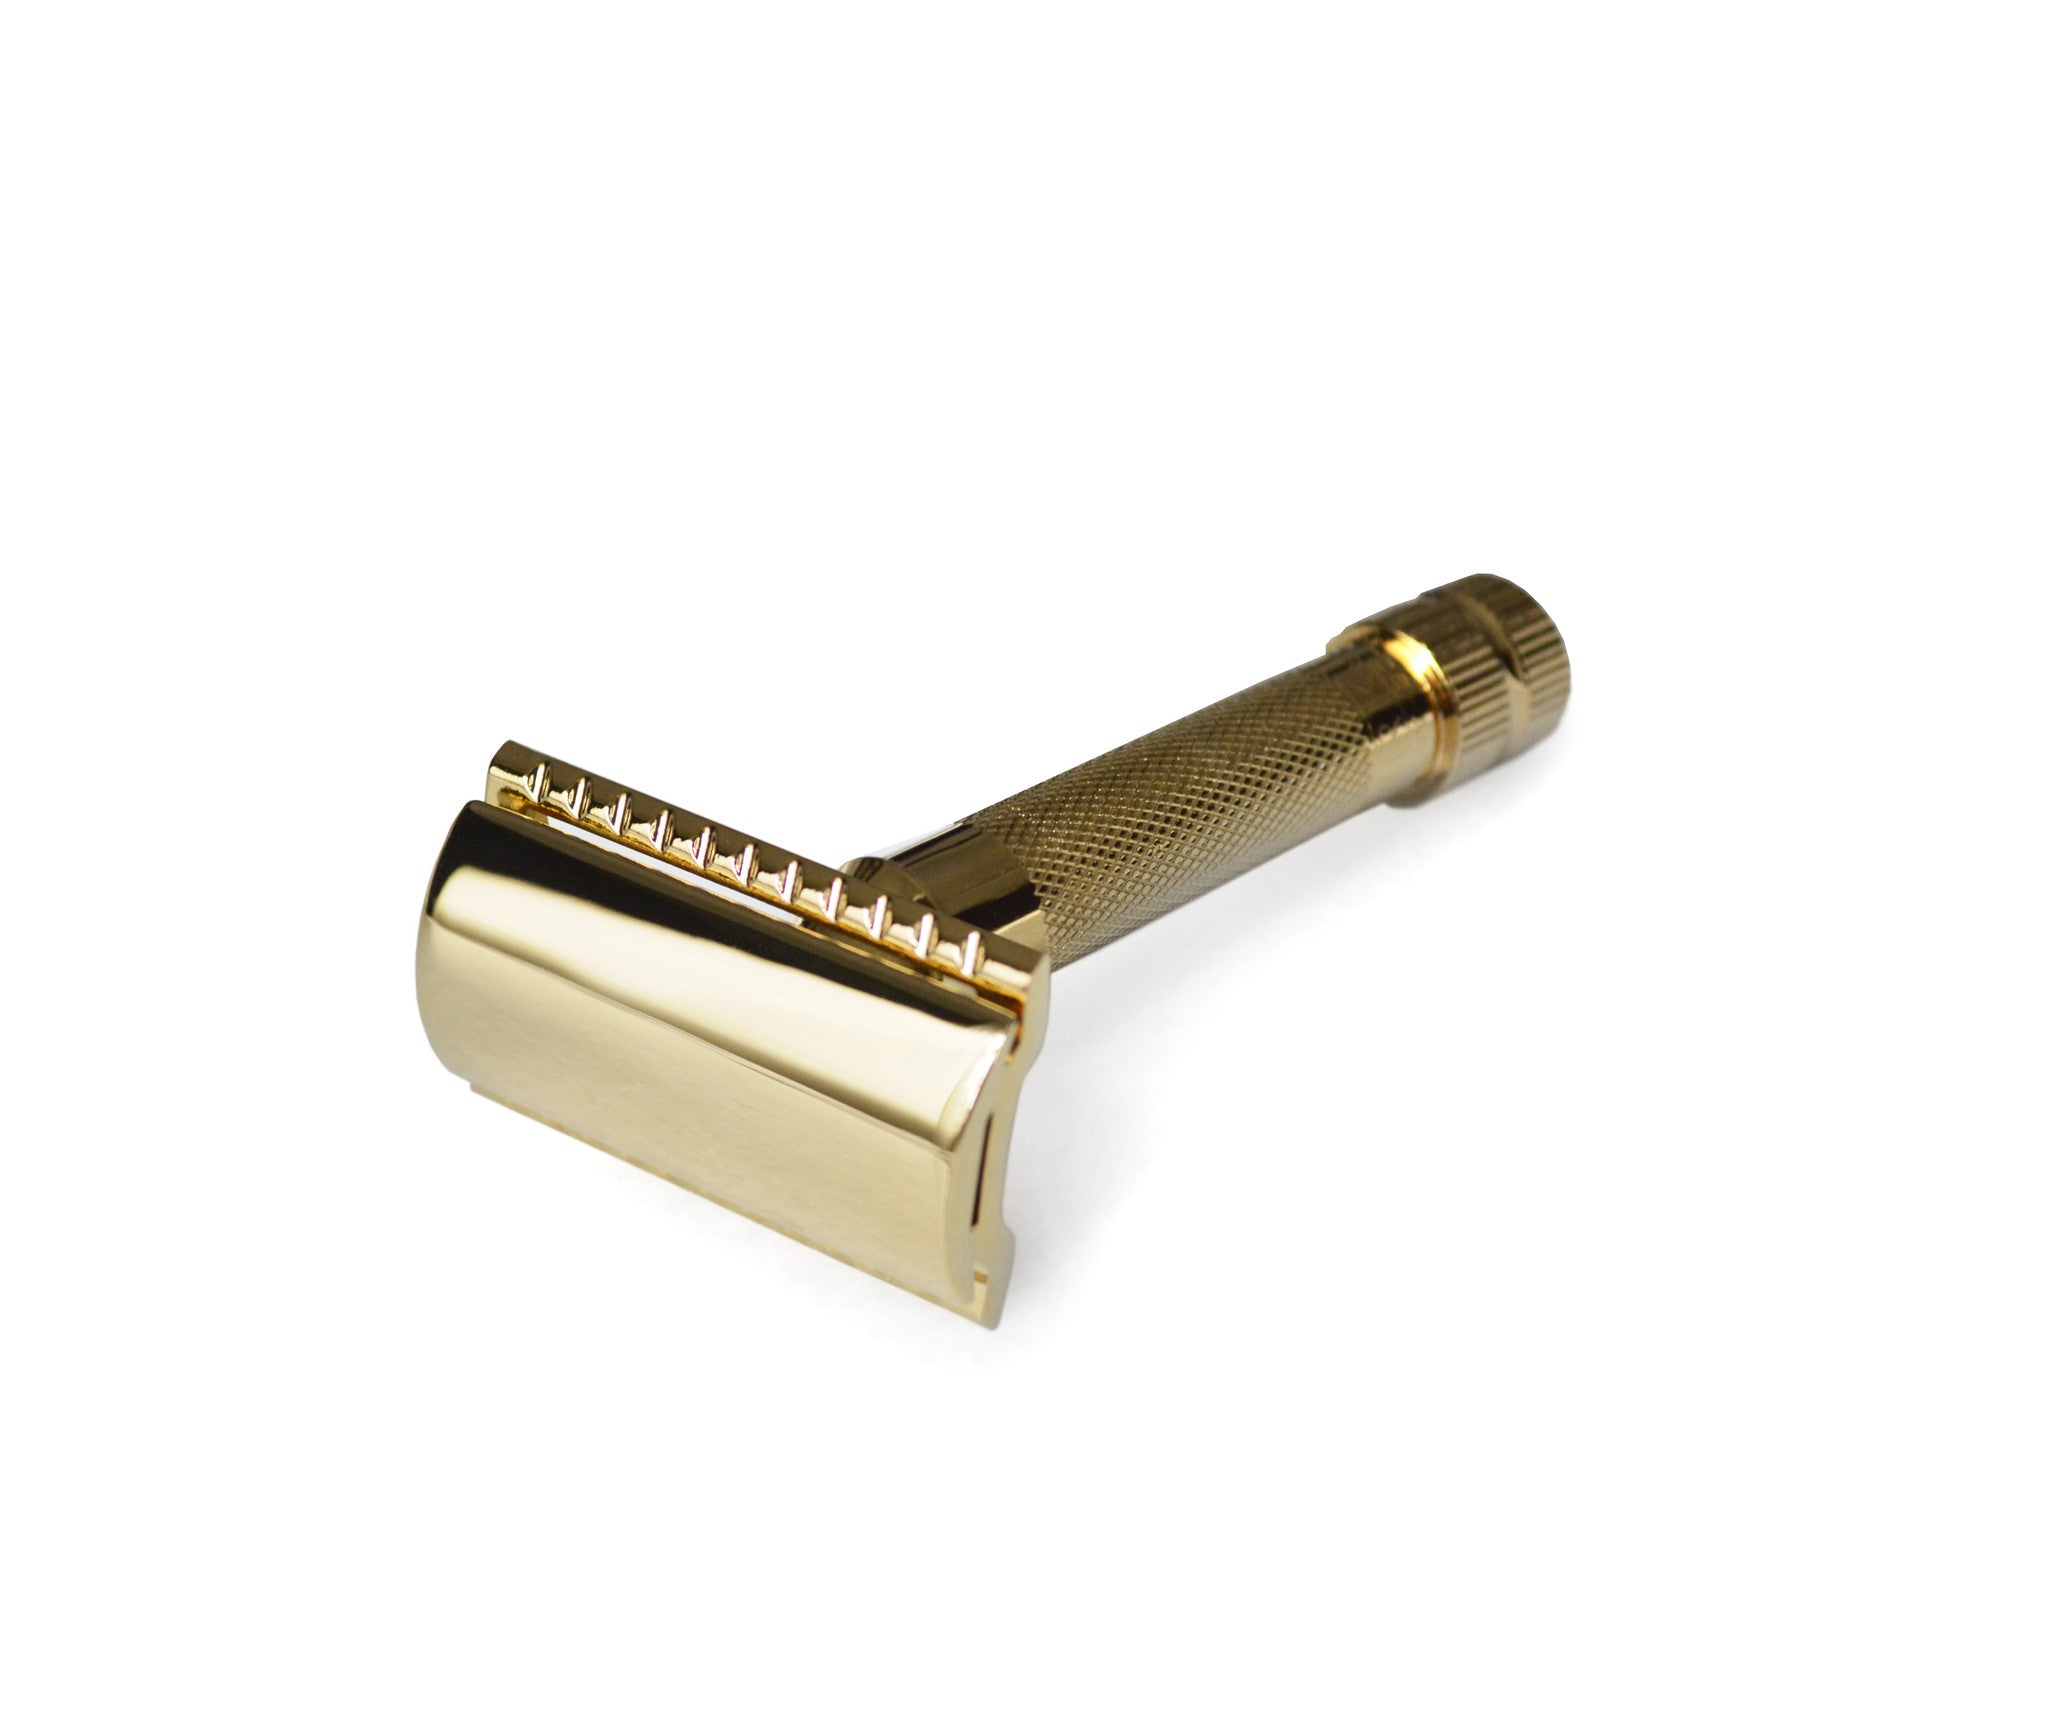 Gold-Plated Traditional Merkur Safety Razor